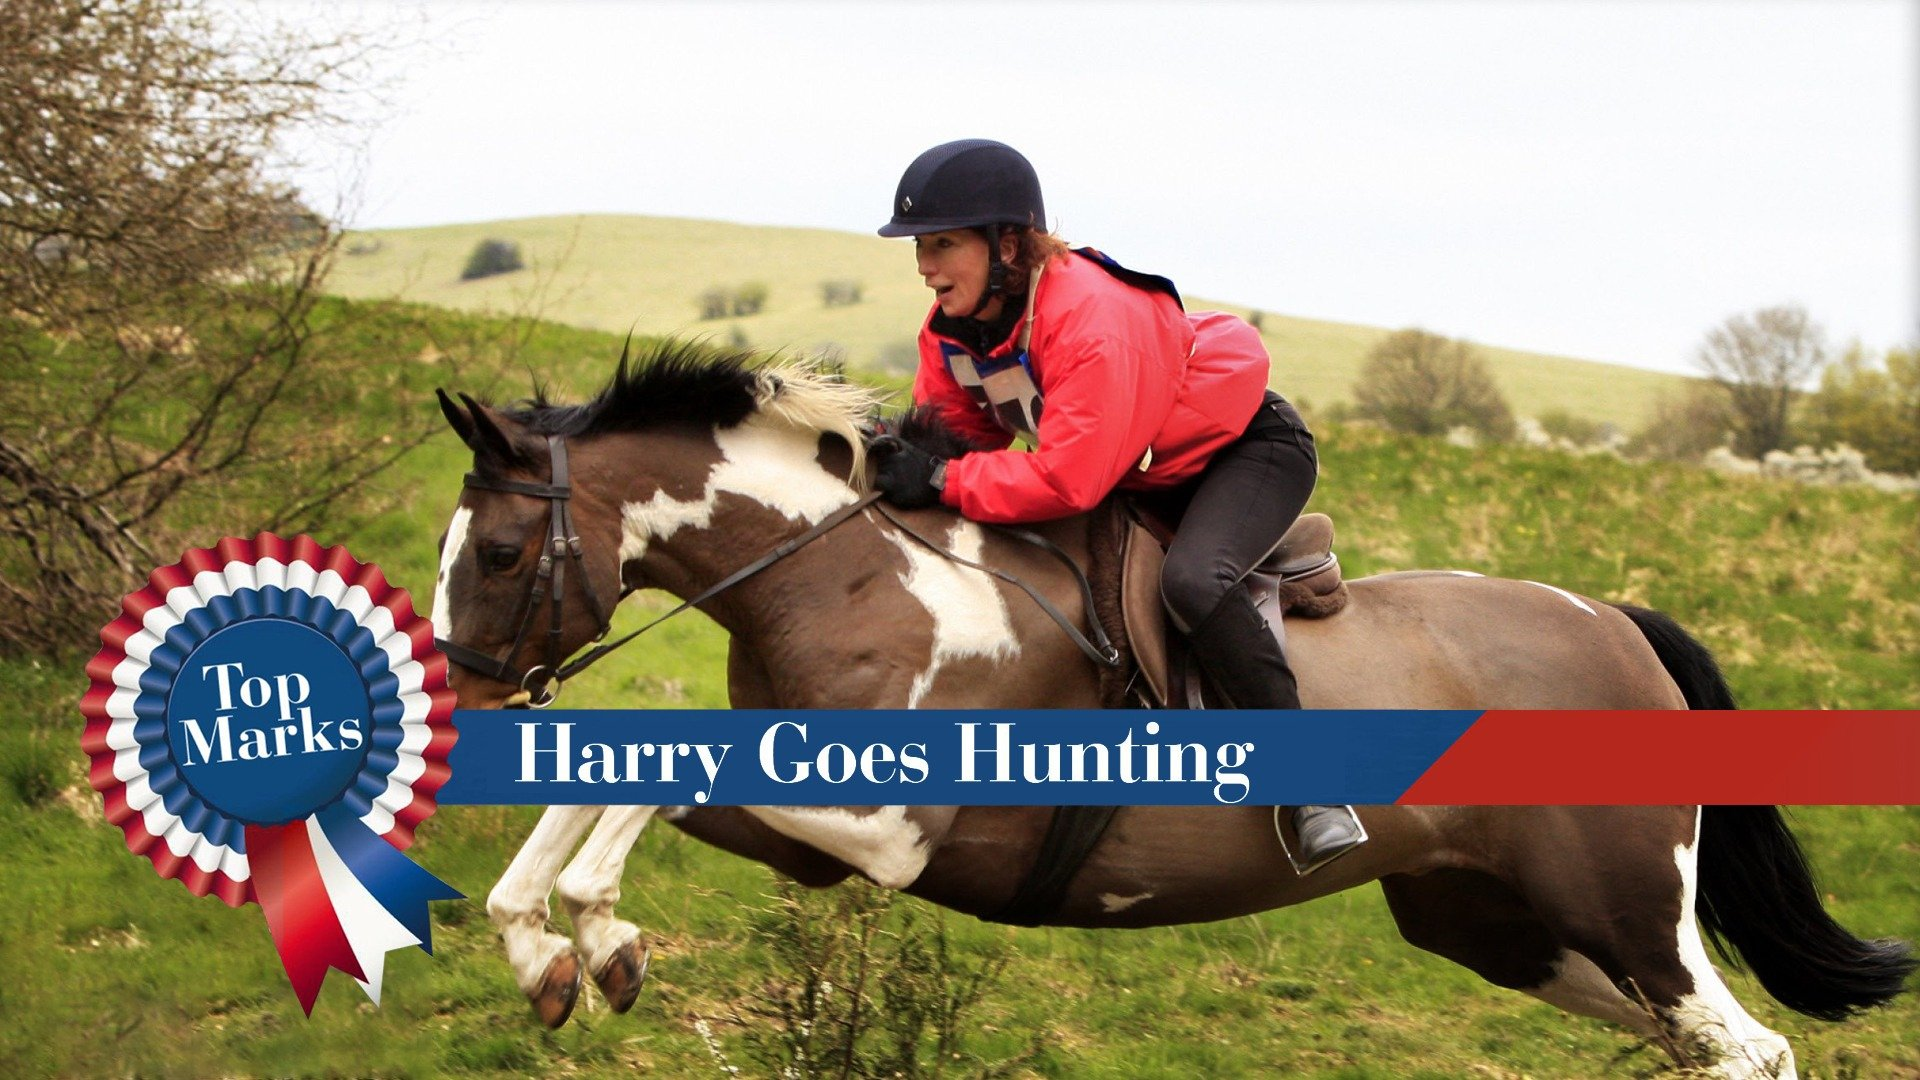 Top Marks: Harry Goes Hunting